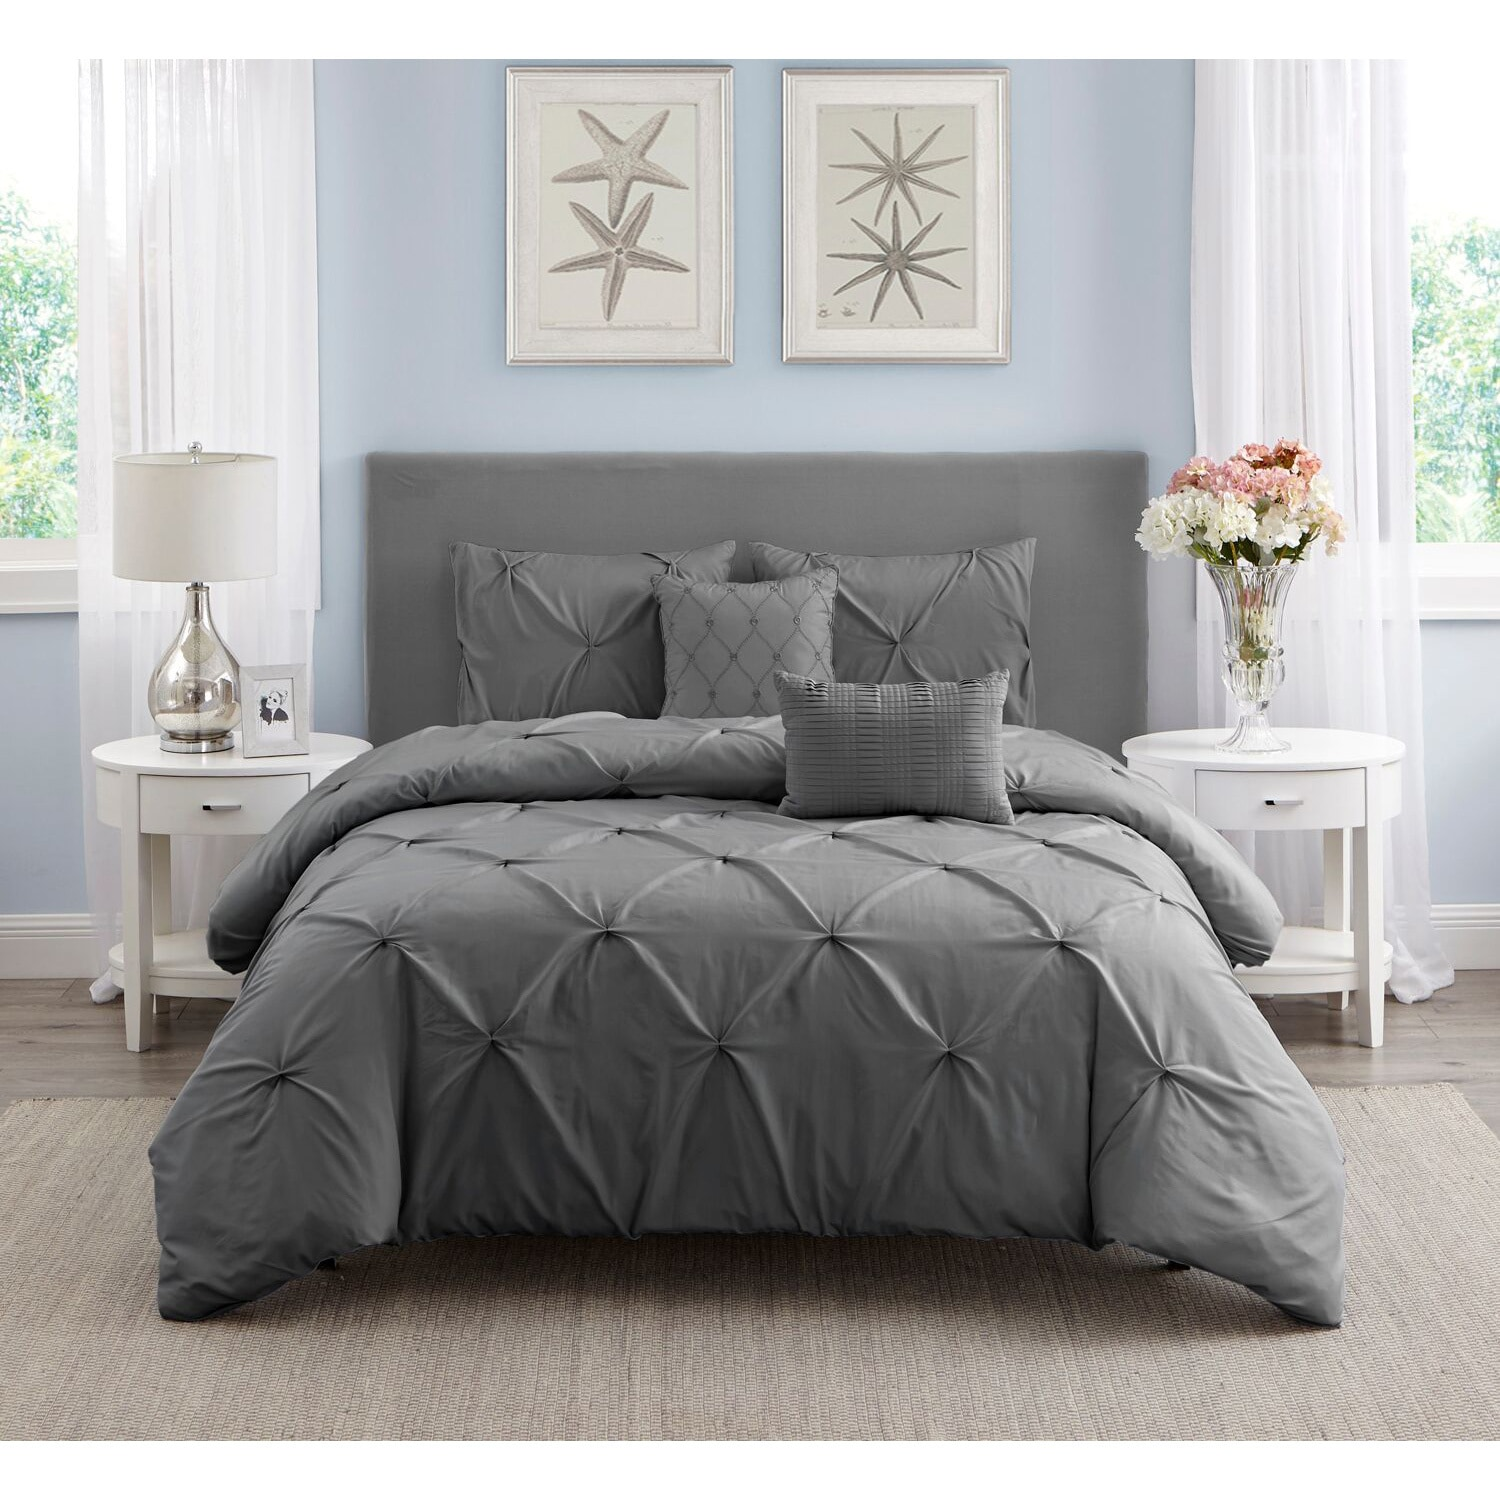 reviravoltta queen pintuck com cover pleated solutions with savannah tufted bedroom duvet headboard collection white of